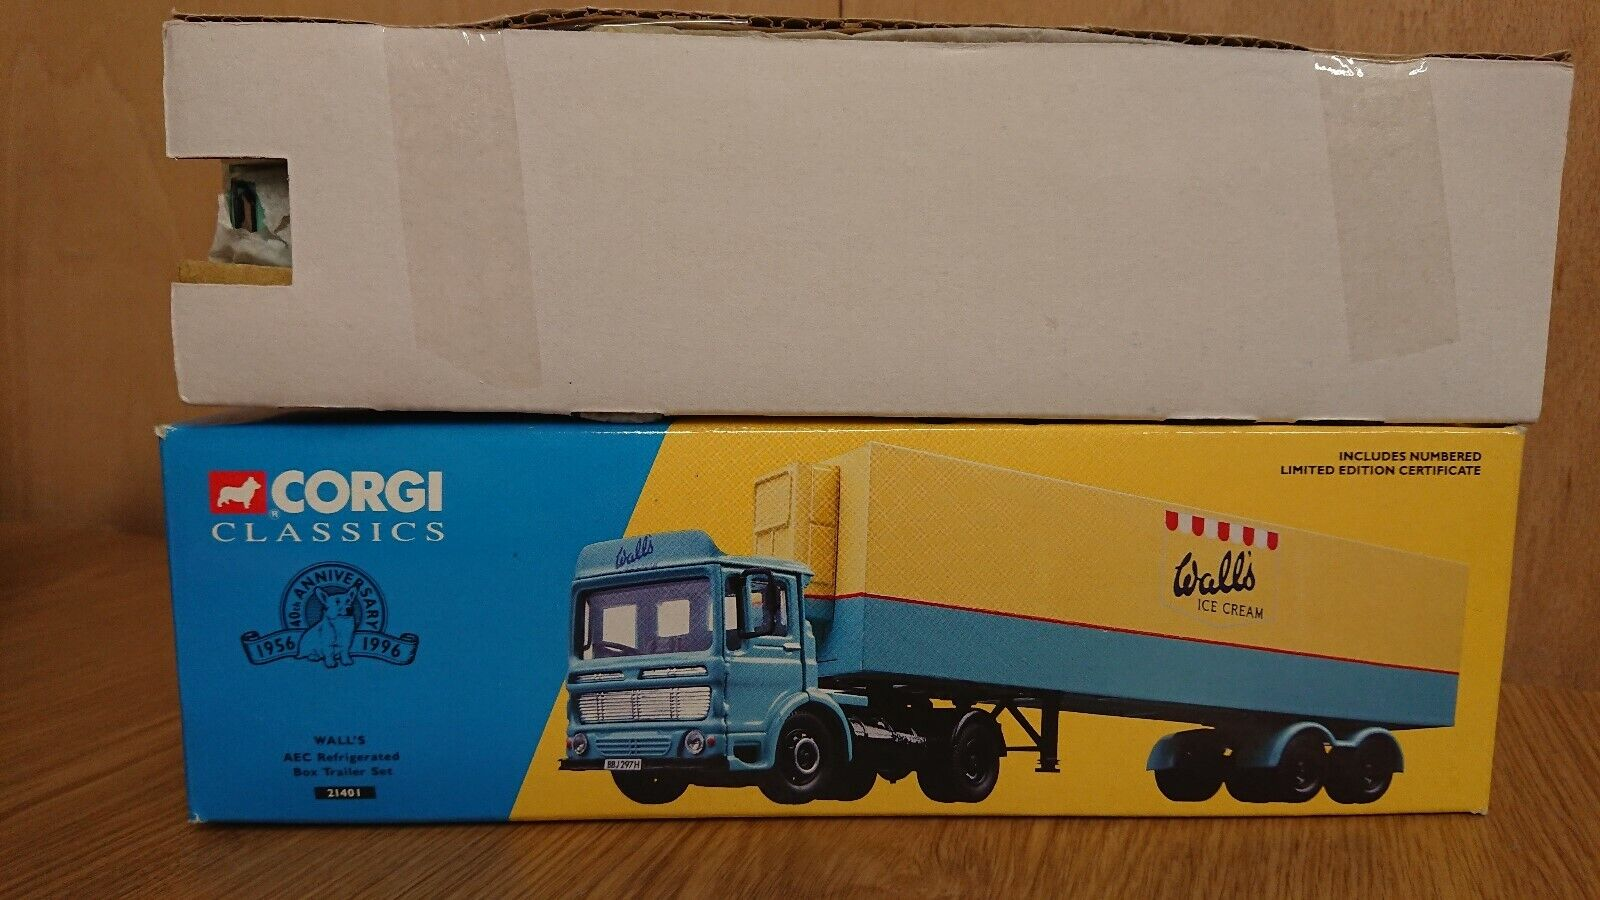 Corgi 21401 WALL'S ICE CREAM AEC Refridgerated Box Trailer Ltd Edition